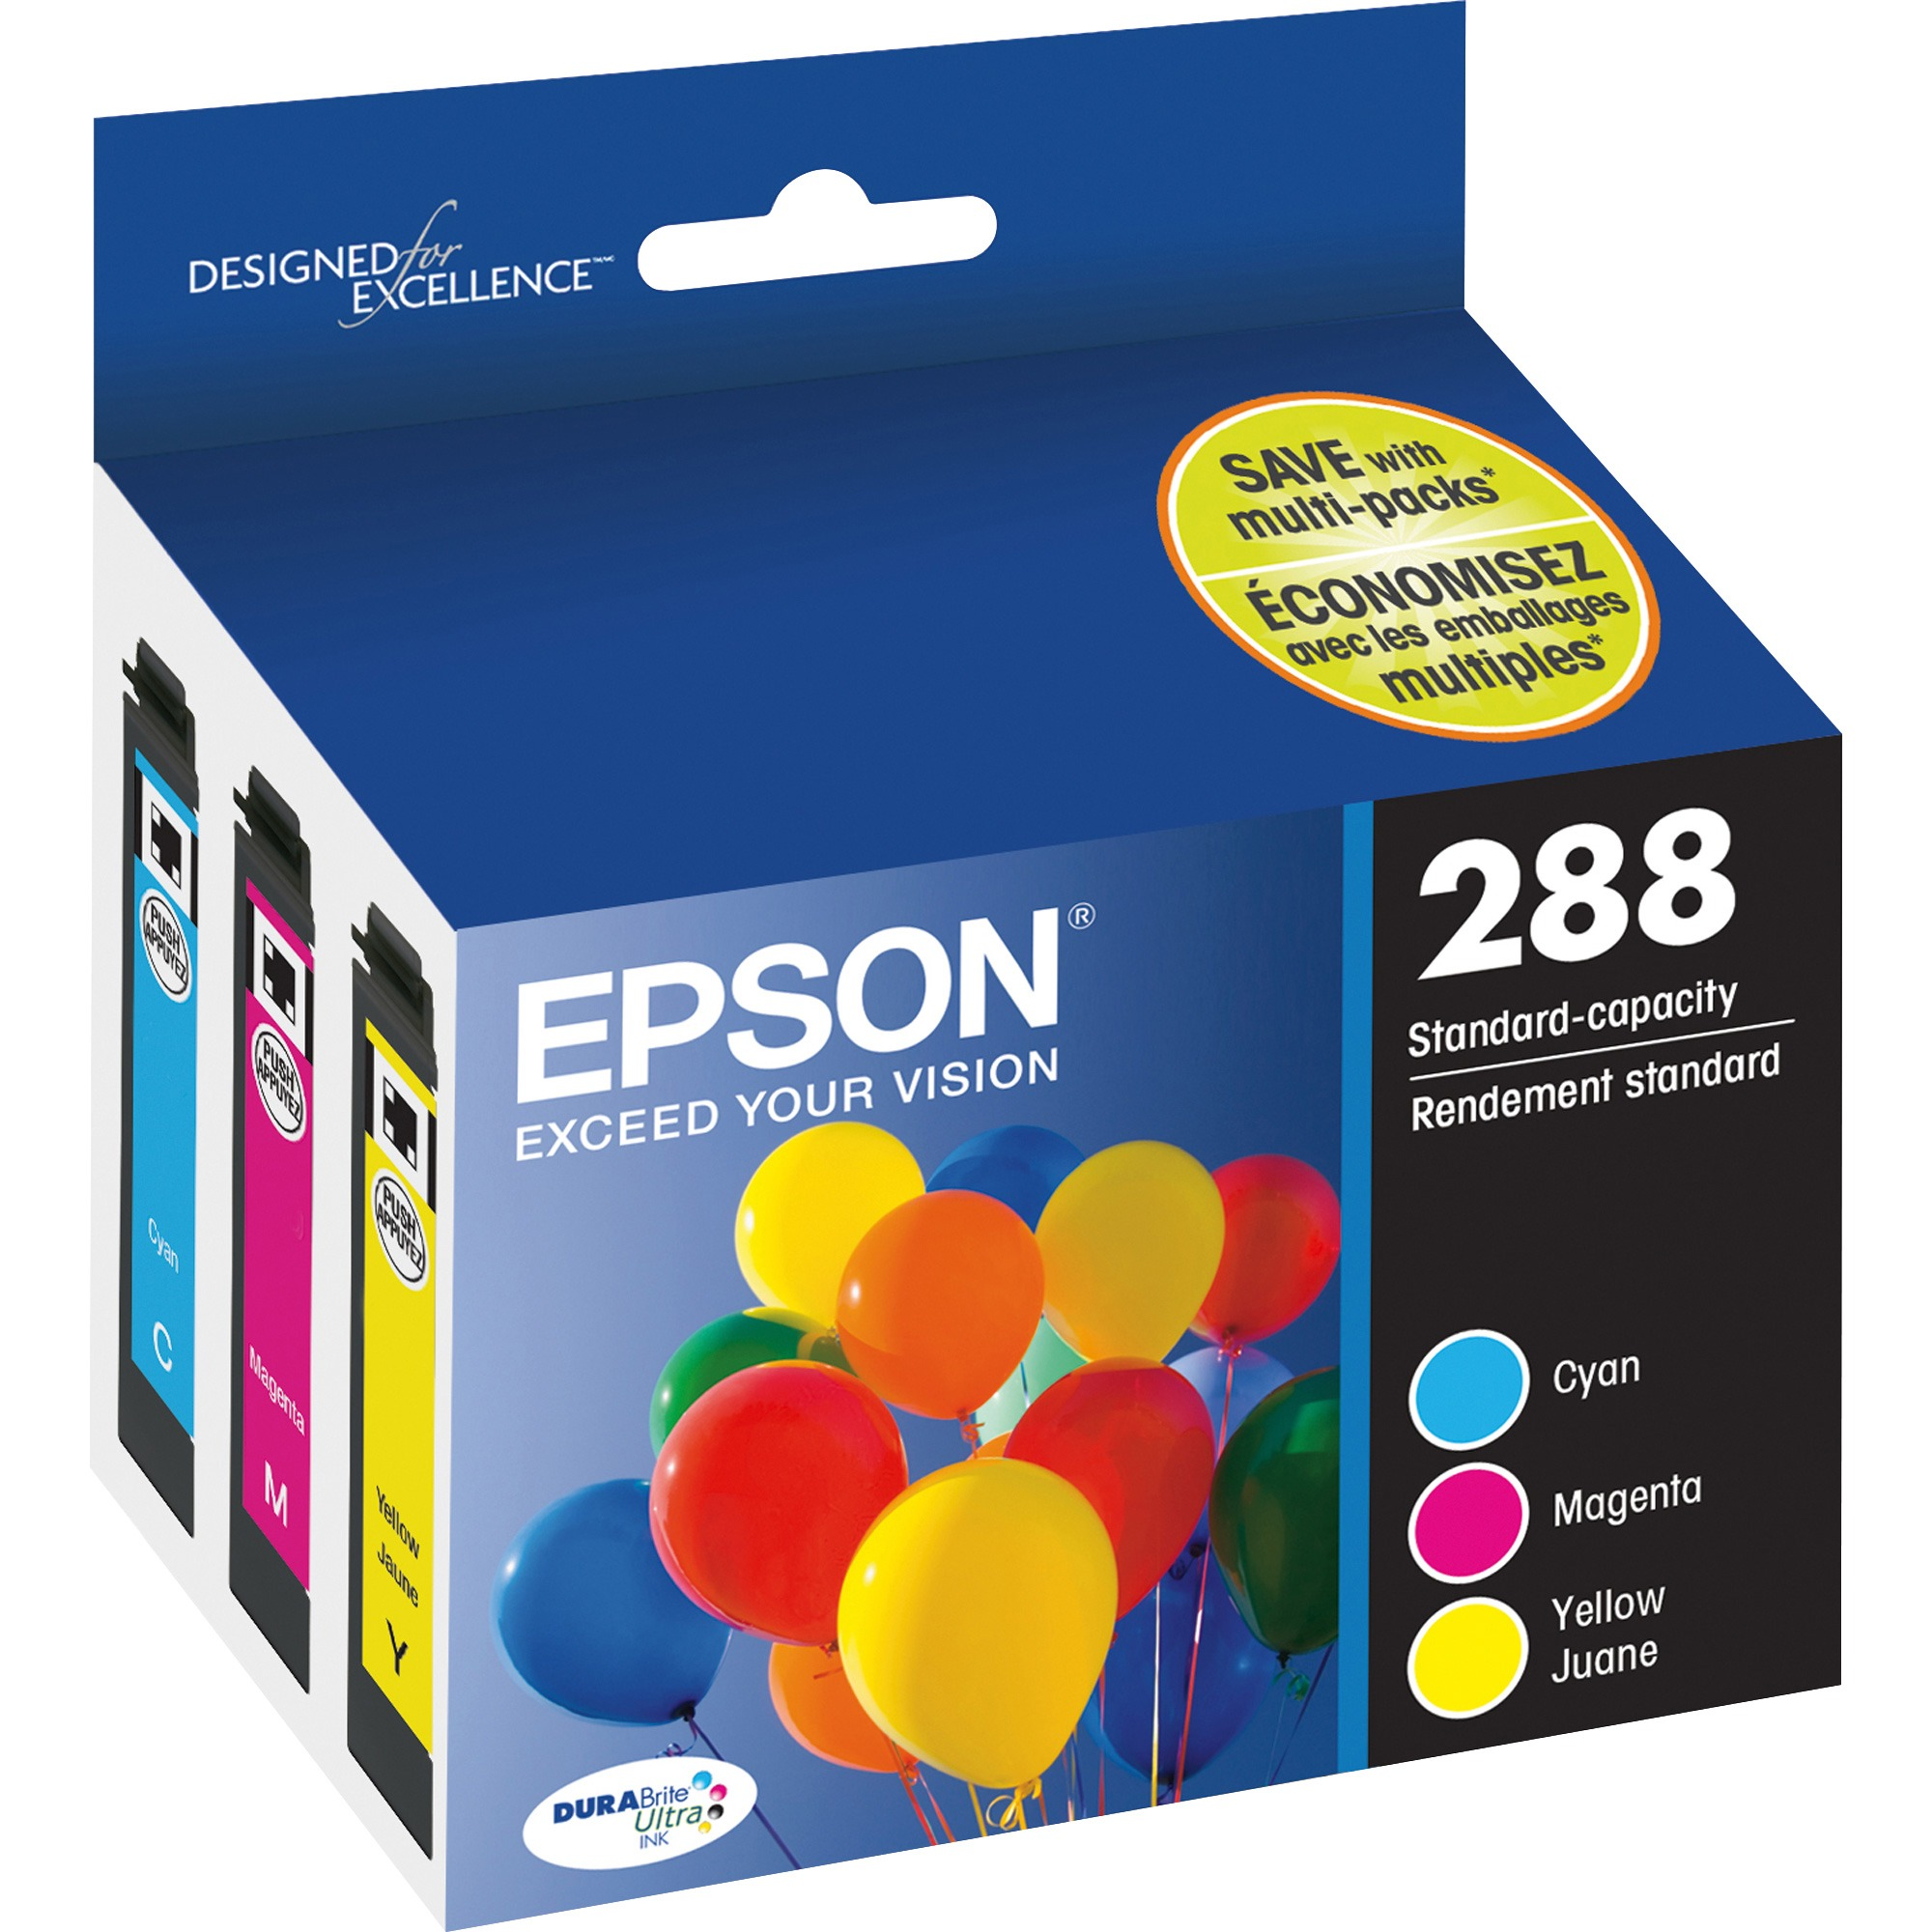 Epson 288 DURABrite Ultra Original Ink Cartridge - Cyan, Magenta, Yellow